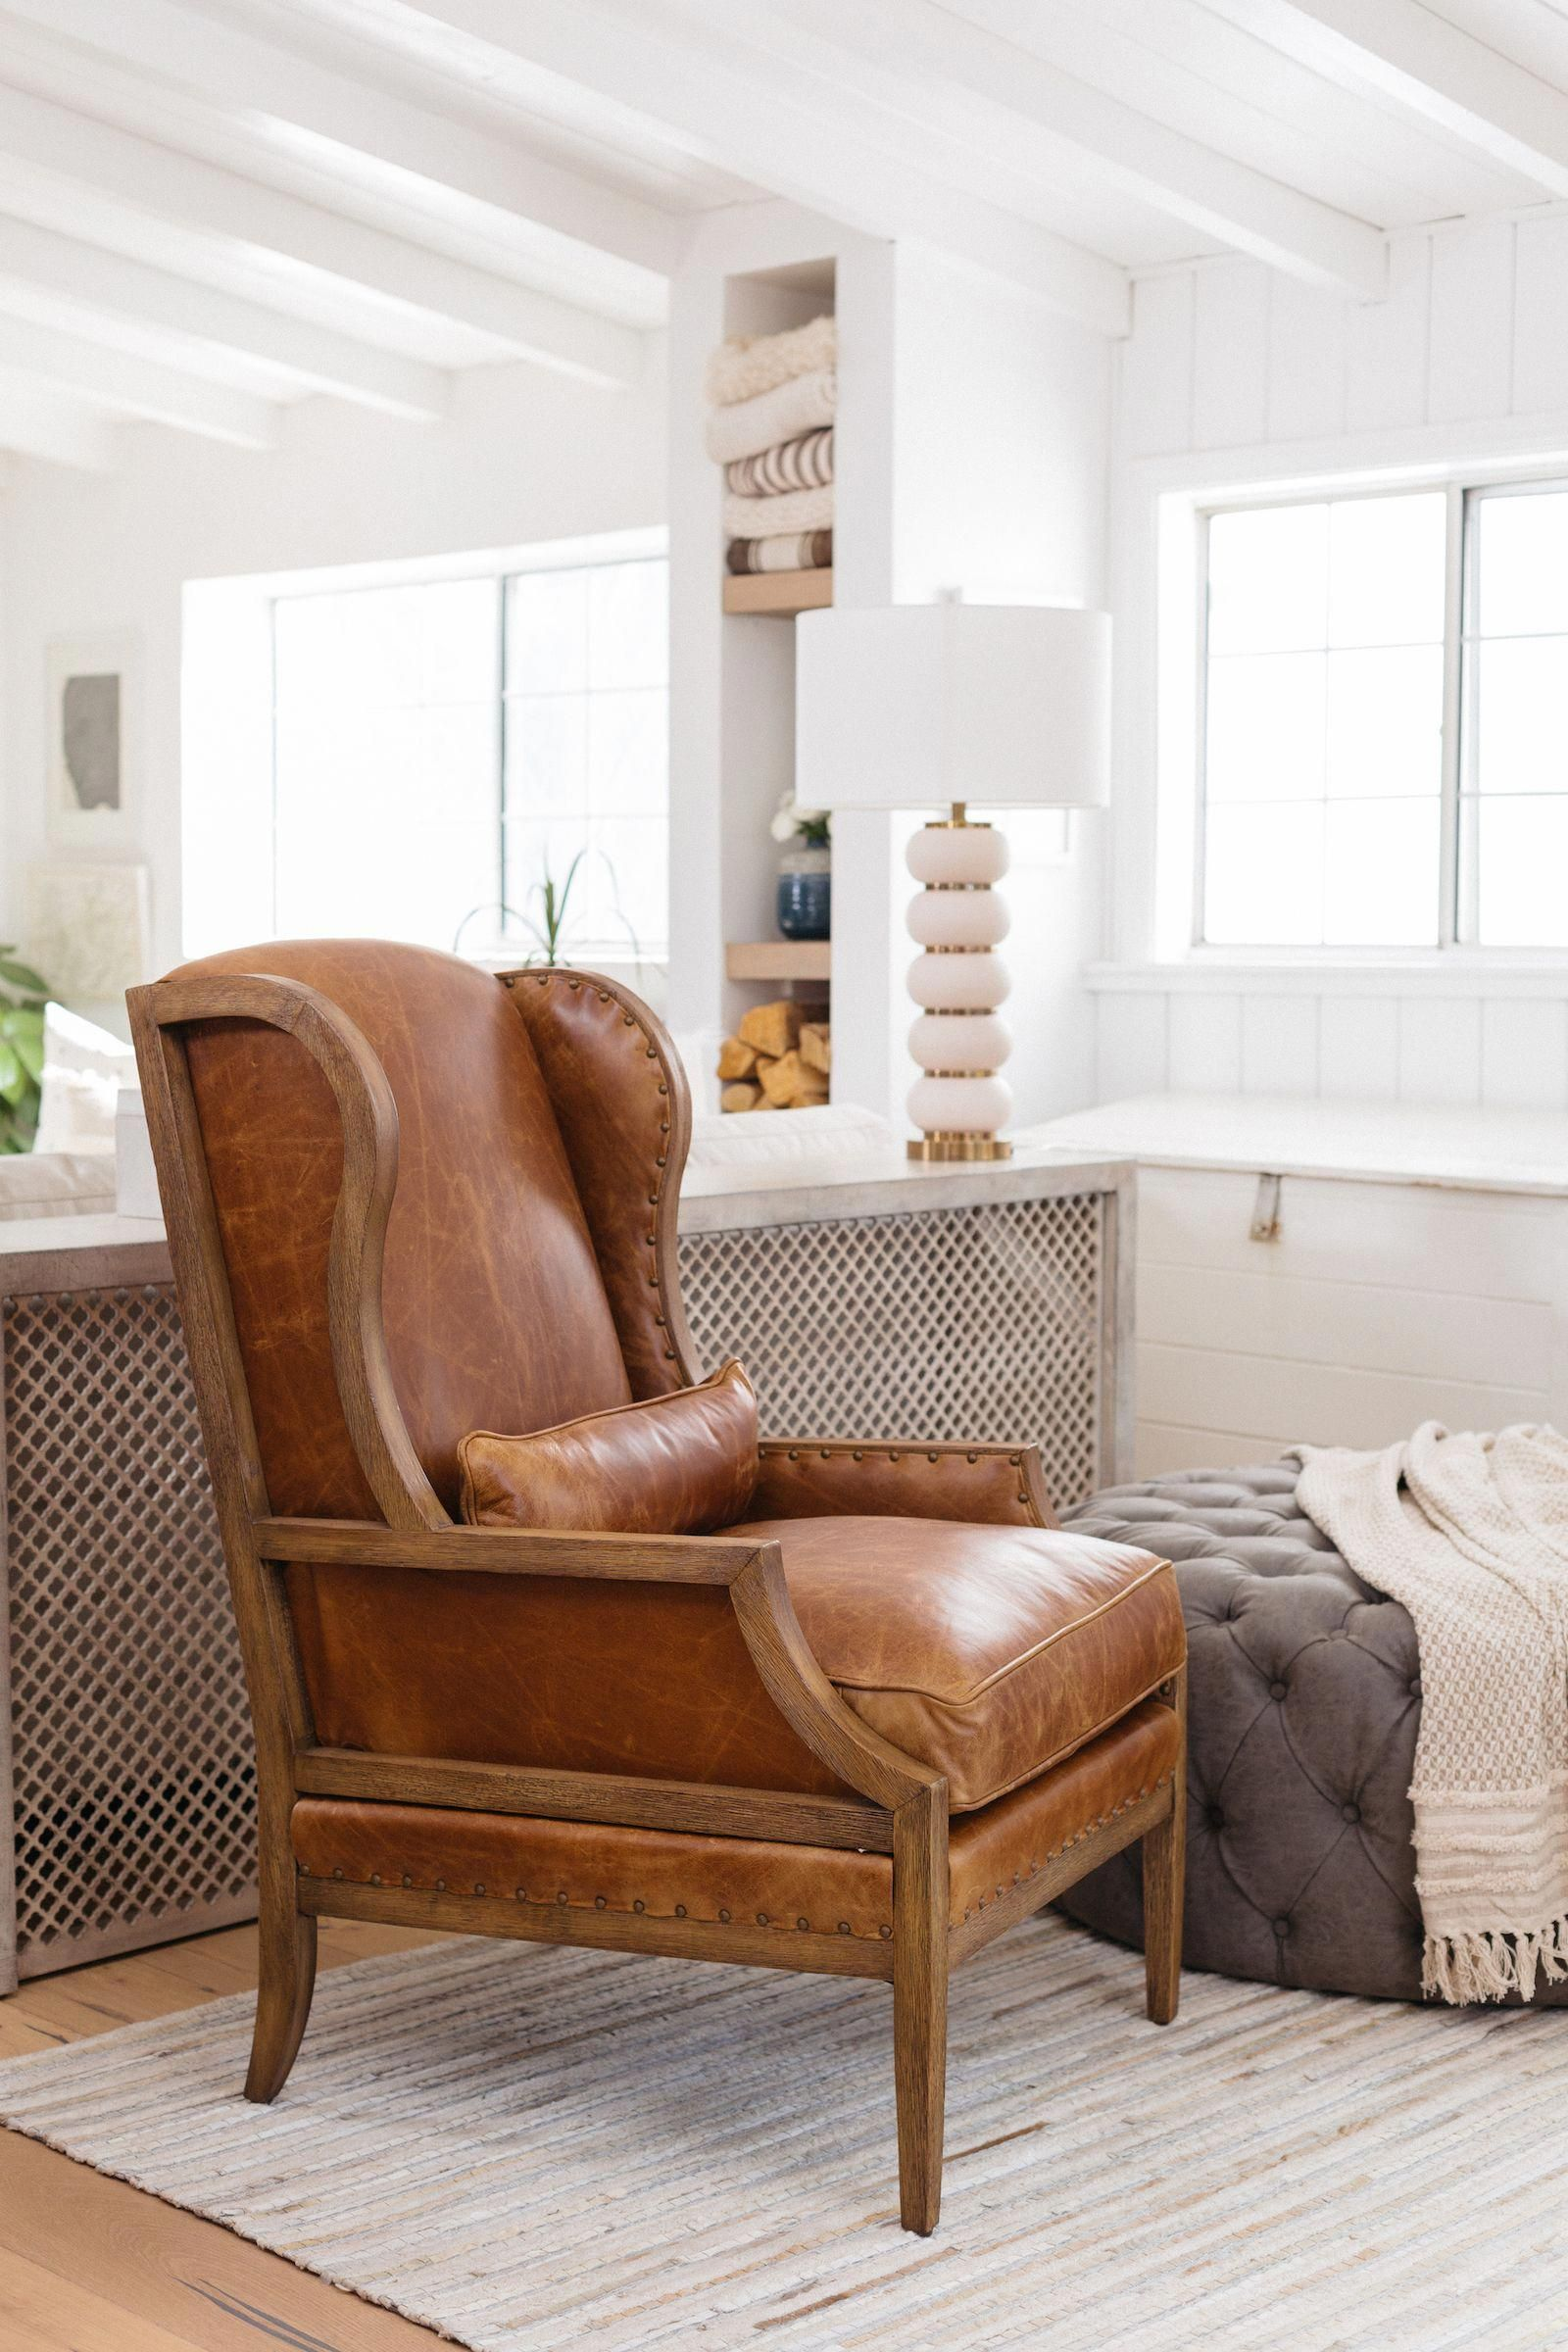 #diyhomedecor | Leather chair living room, Living room ...